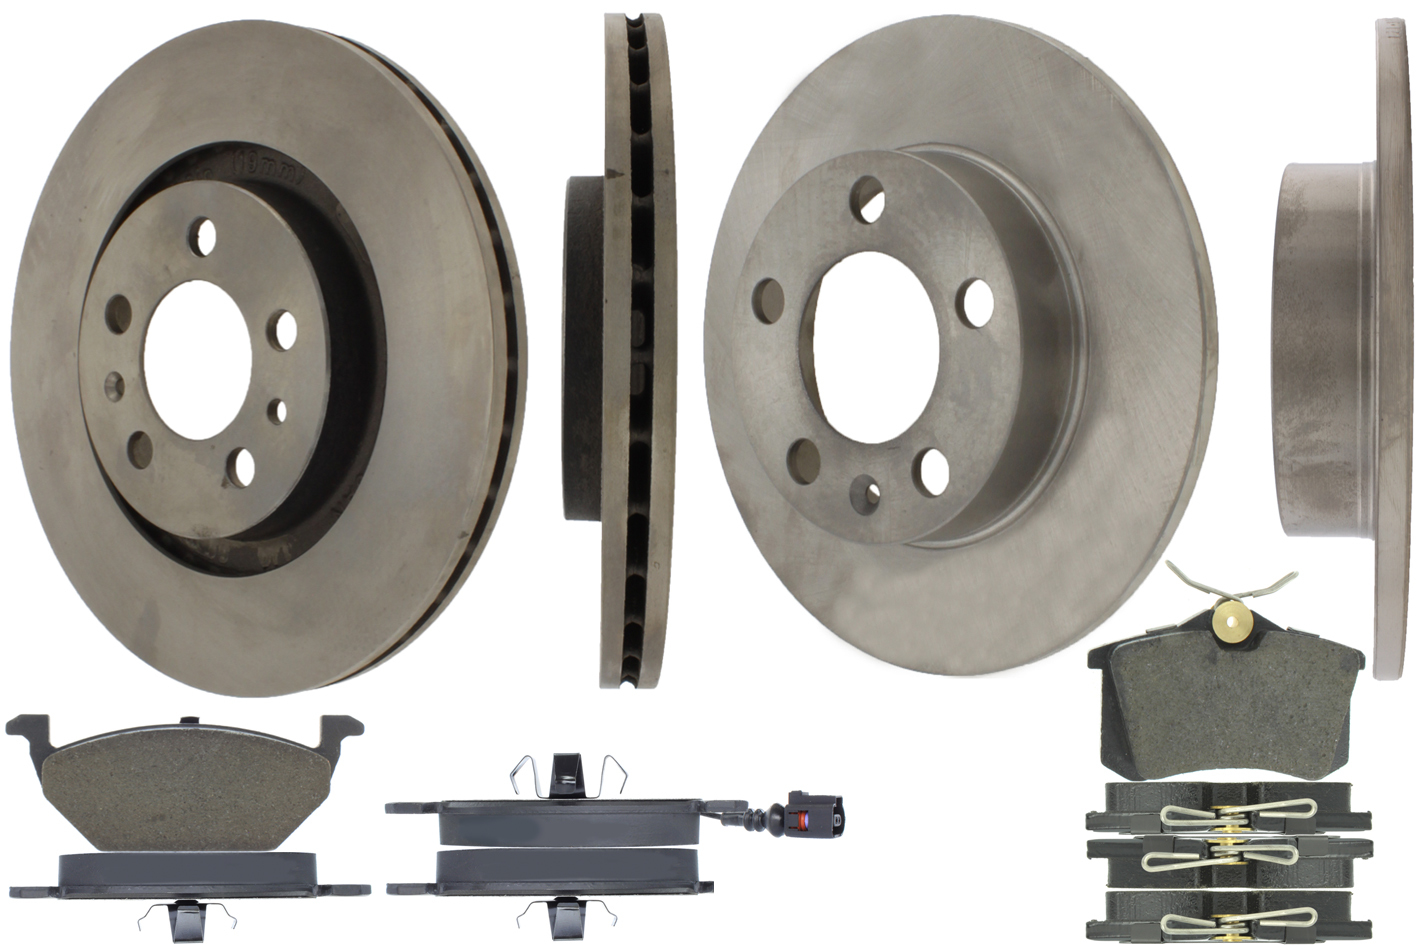 905.33067 Centric Brake Parts Select Axle Pack 4 Wheel